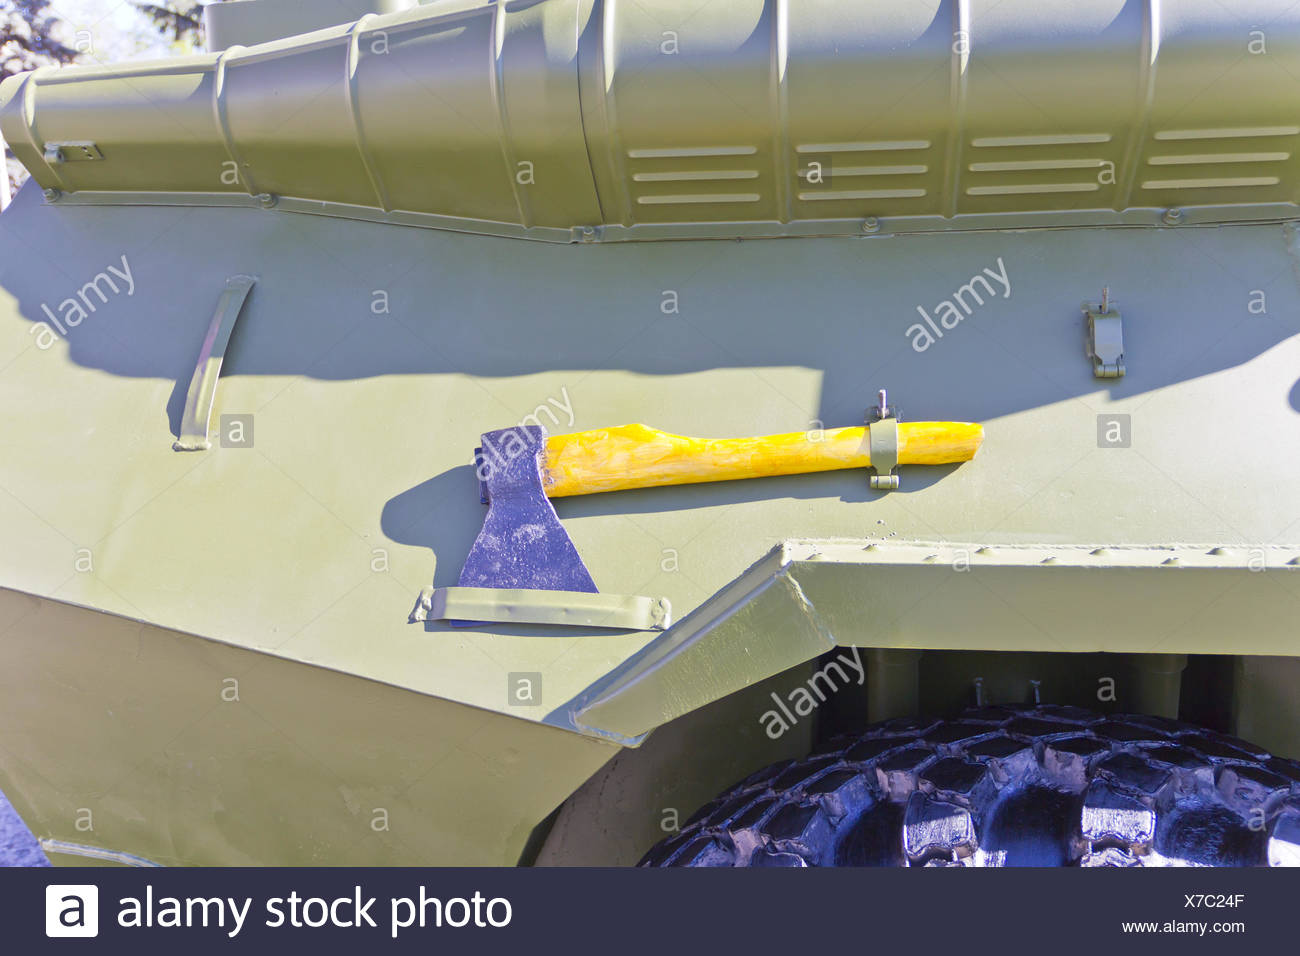 Military transport with ax - Stock Image